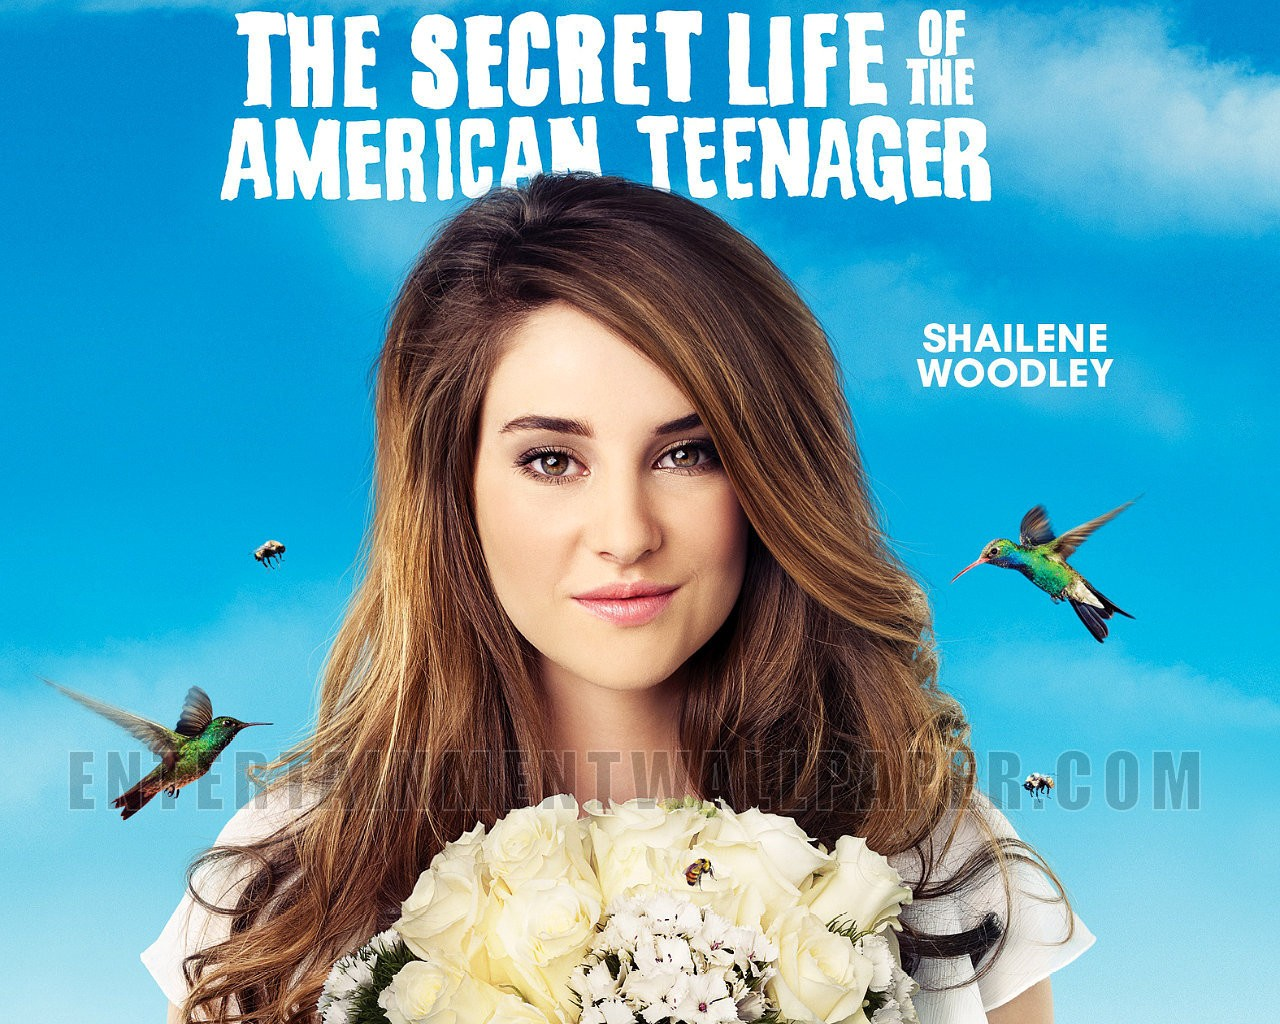 The Secret Life of the American Teenager Wallpaper   20031480 1280x1024